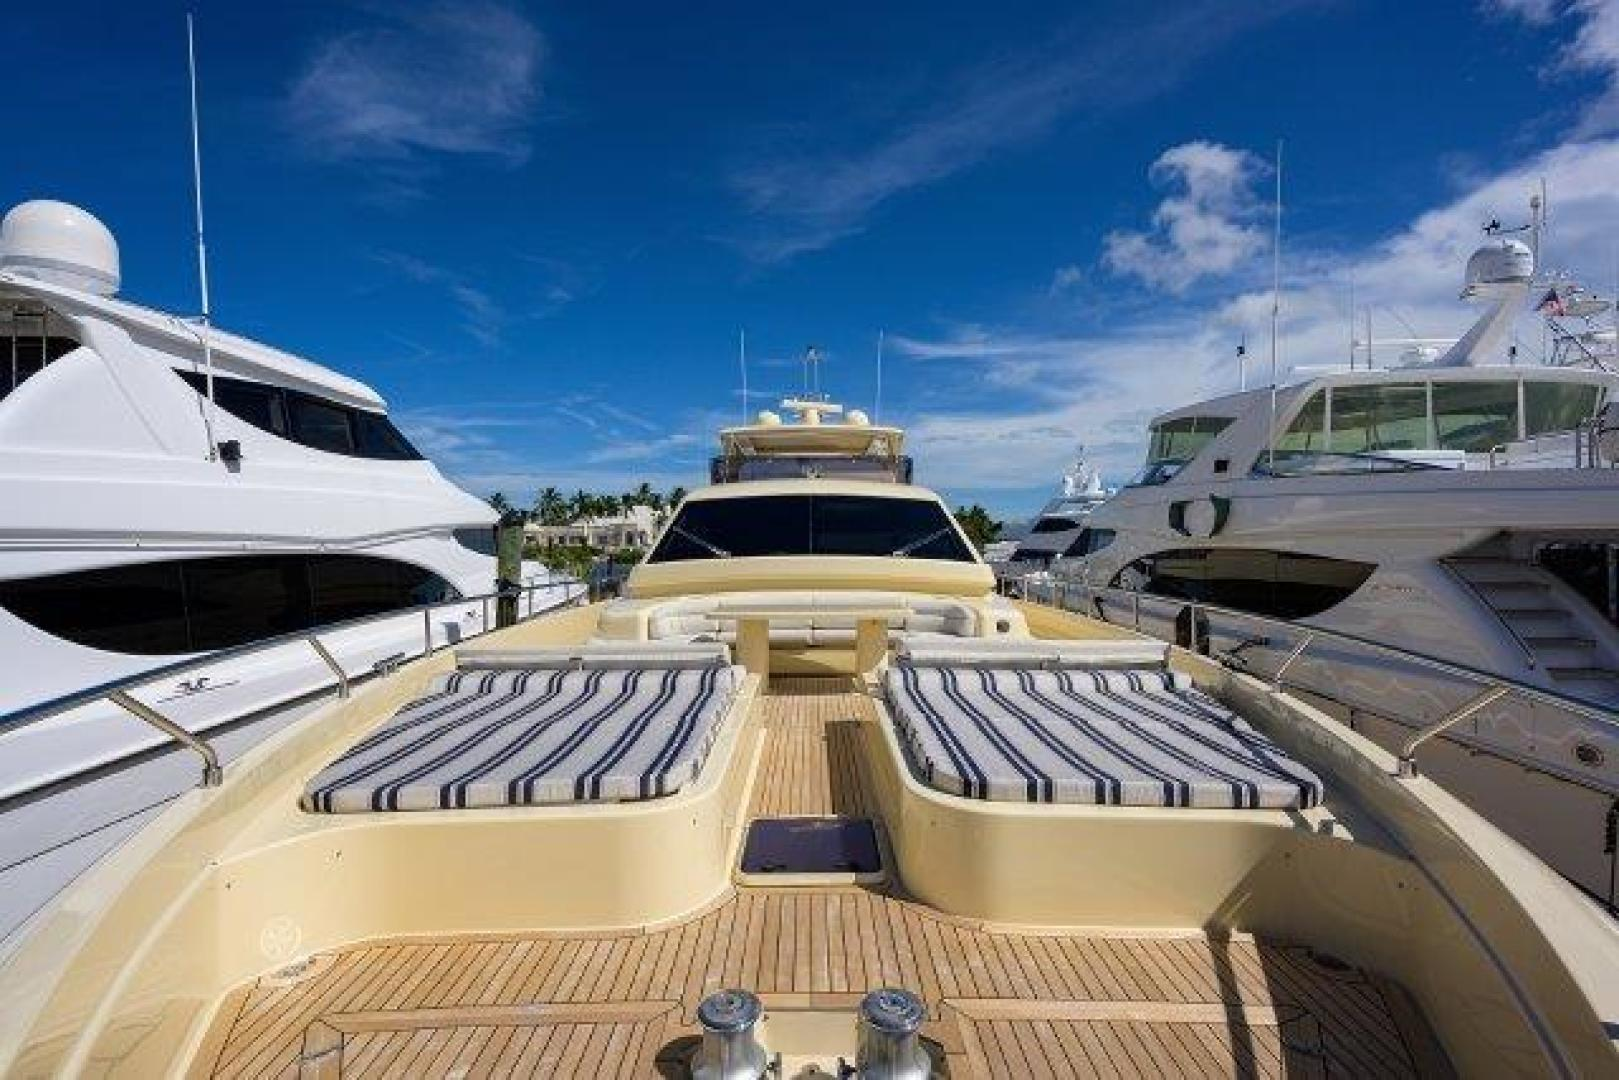 Ferretti Yachts-Altura 840 2010-MISS ALLIED Jupiter-Florida-United States-Bow -1518363 | Thumbnail